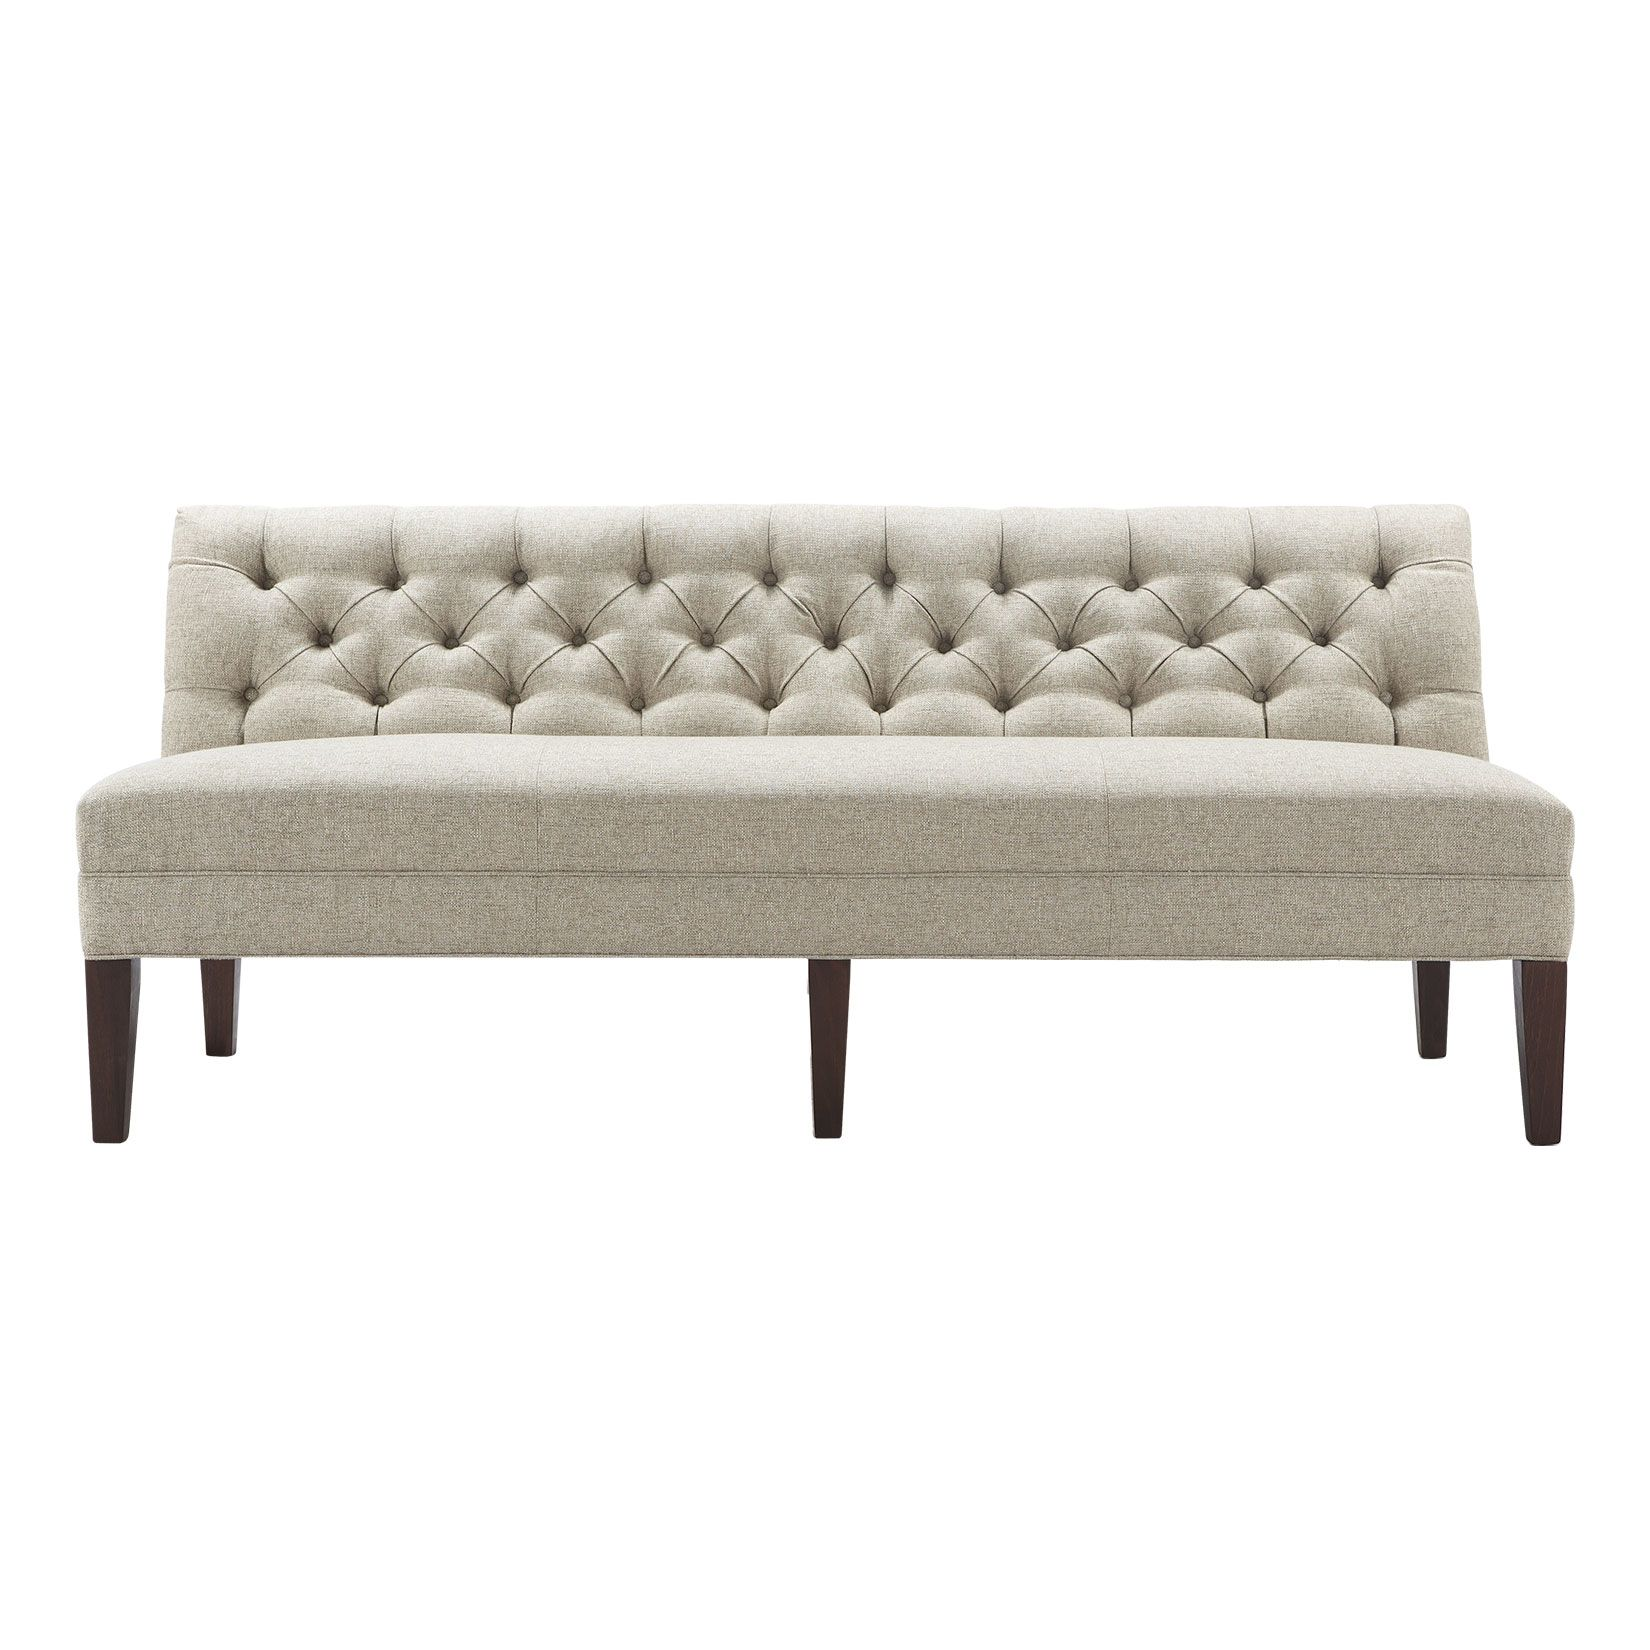 Padded Benches Living Room Upholstered Banquette Seating Bing Images Pinteres